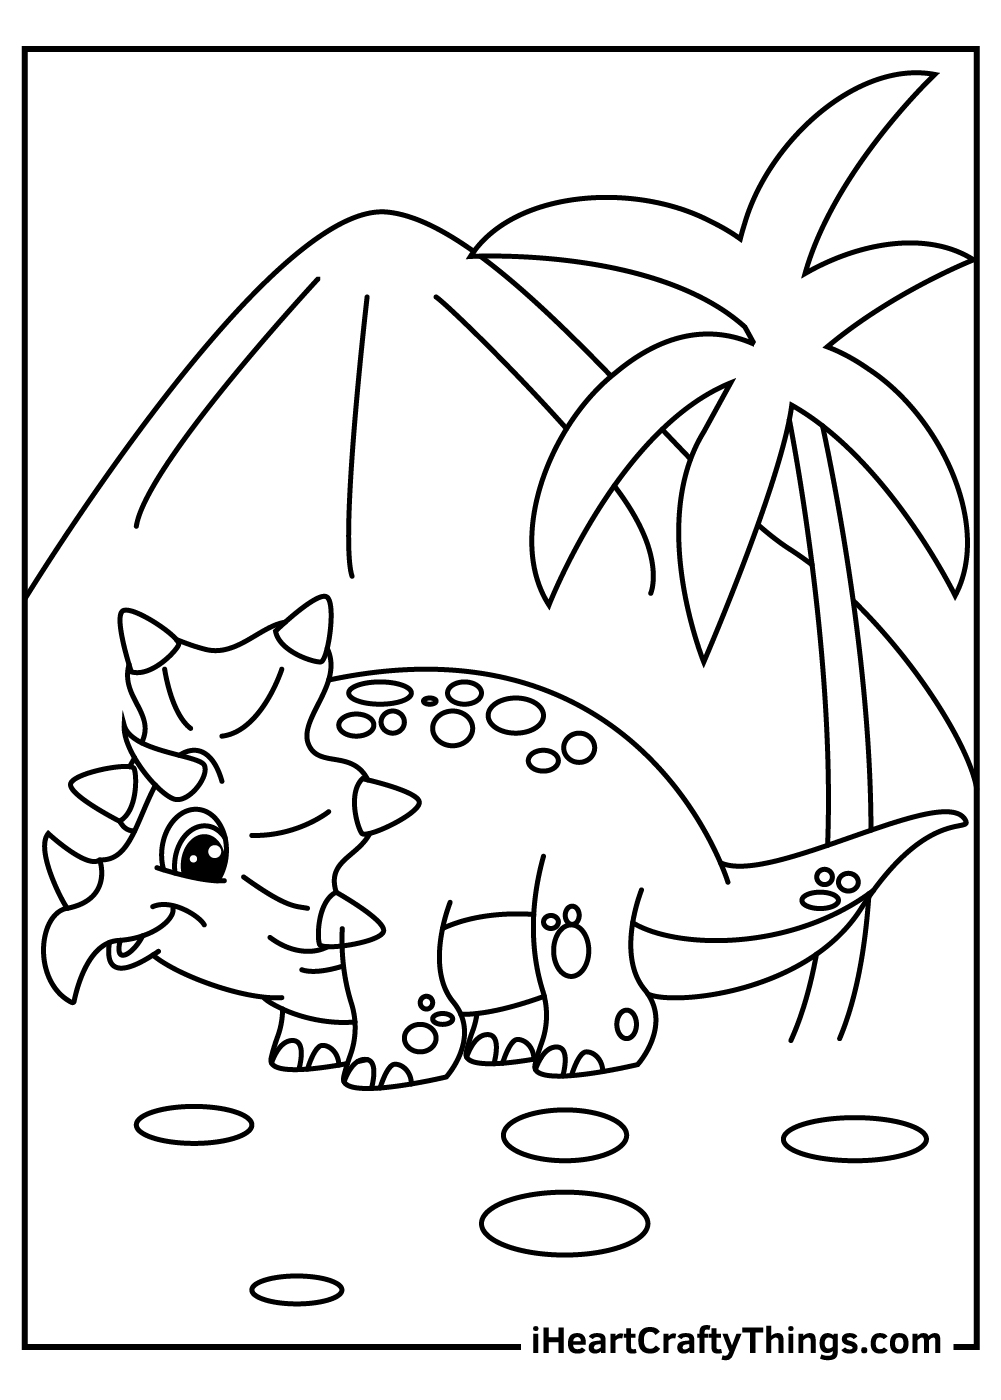 cute baby triceratops coloring pages free download